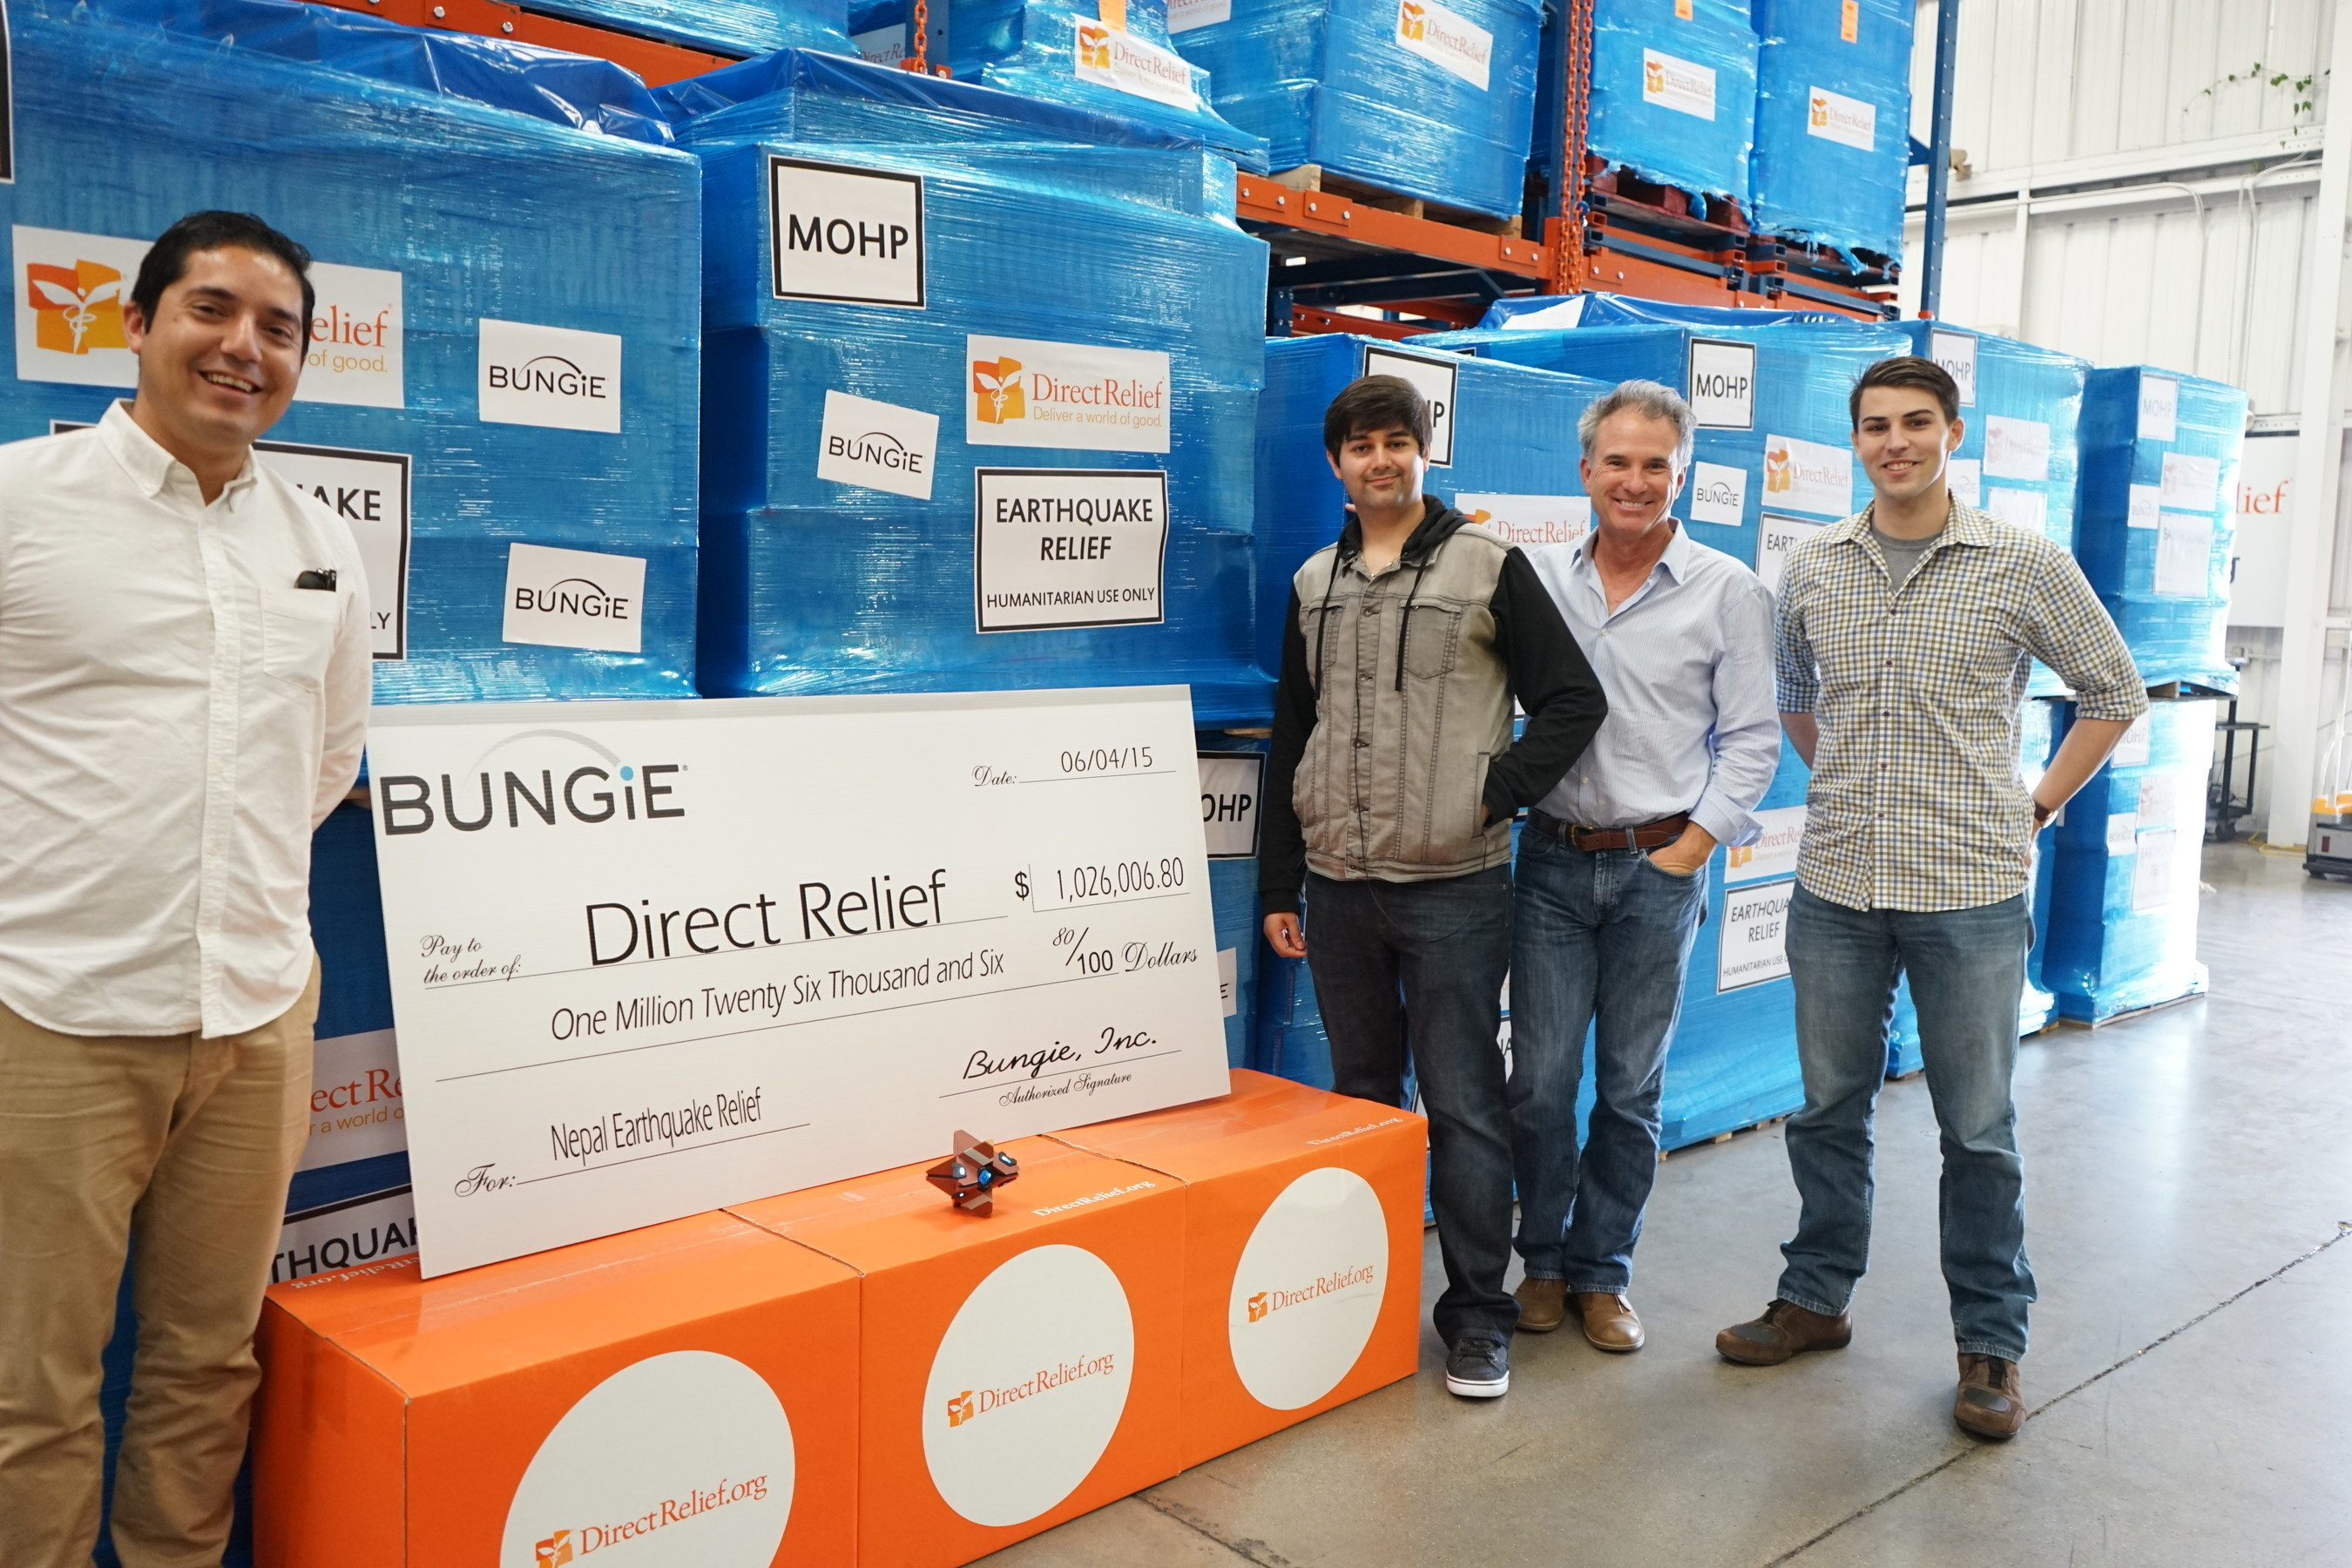 Bungie Rallies 50,000 Gamers, Raises $1,026,006.80 for Nepal Earthquake Relief